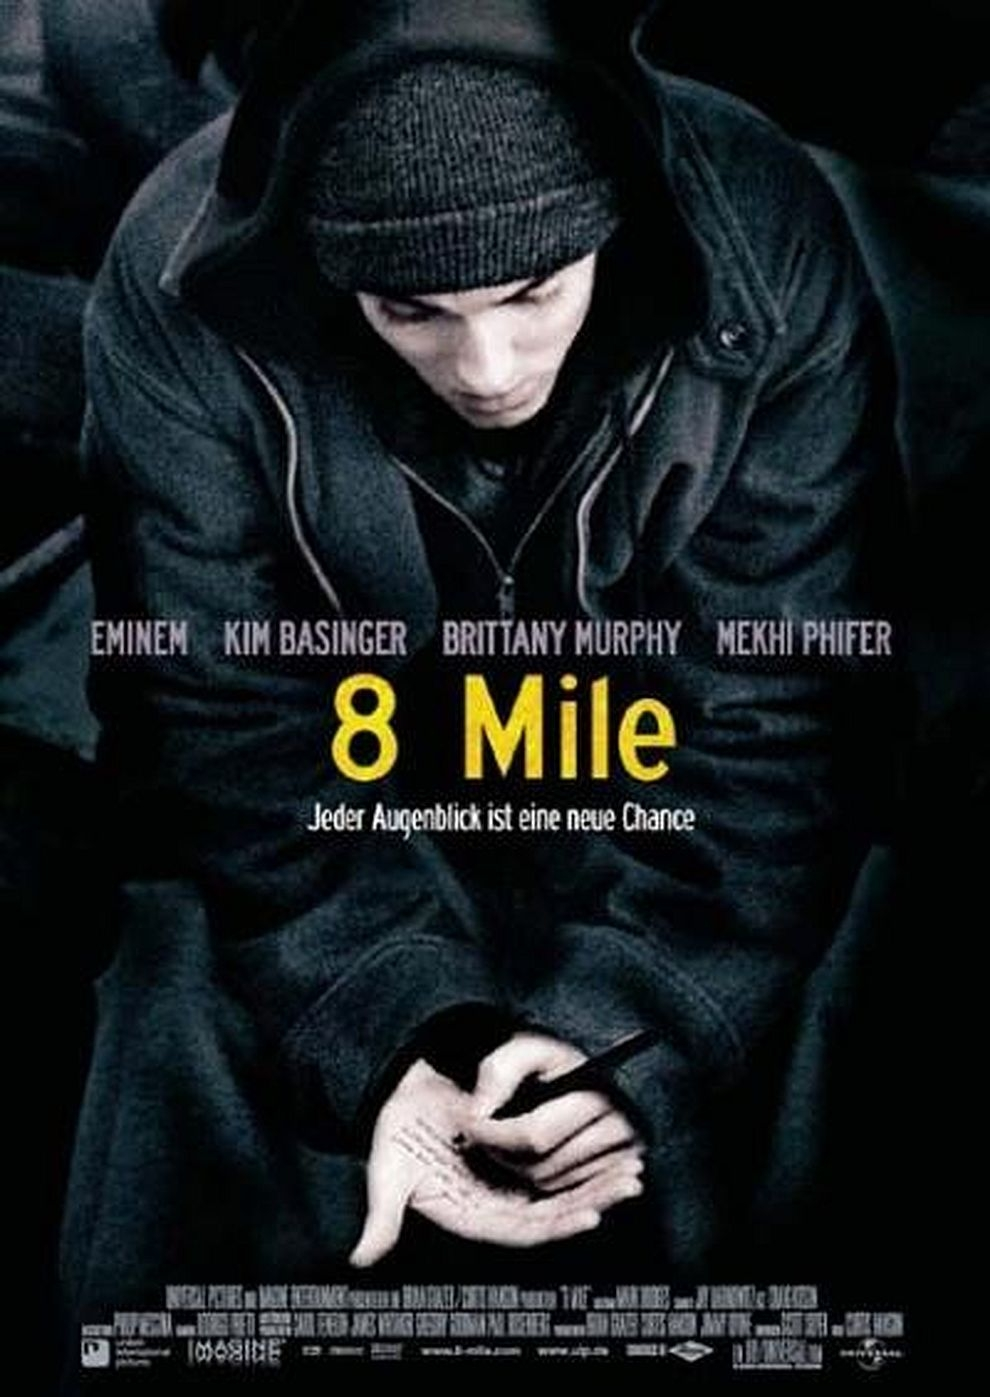 8 Mile (Poster)